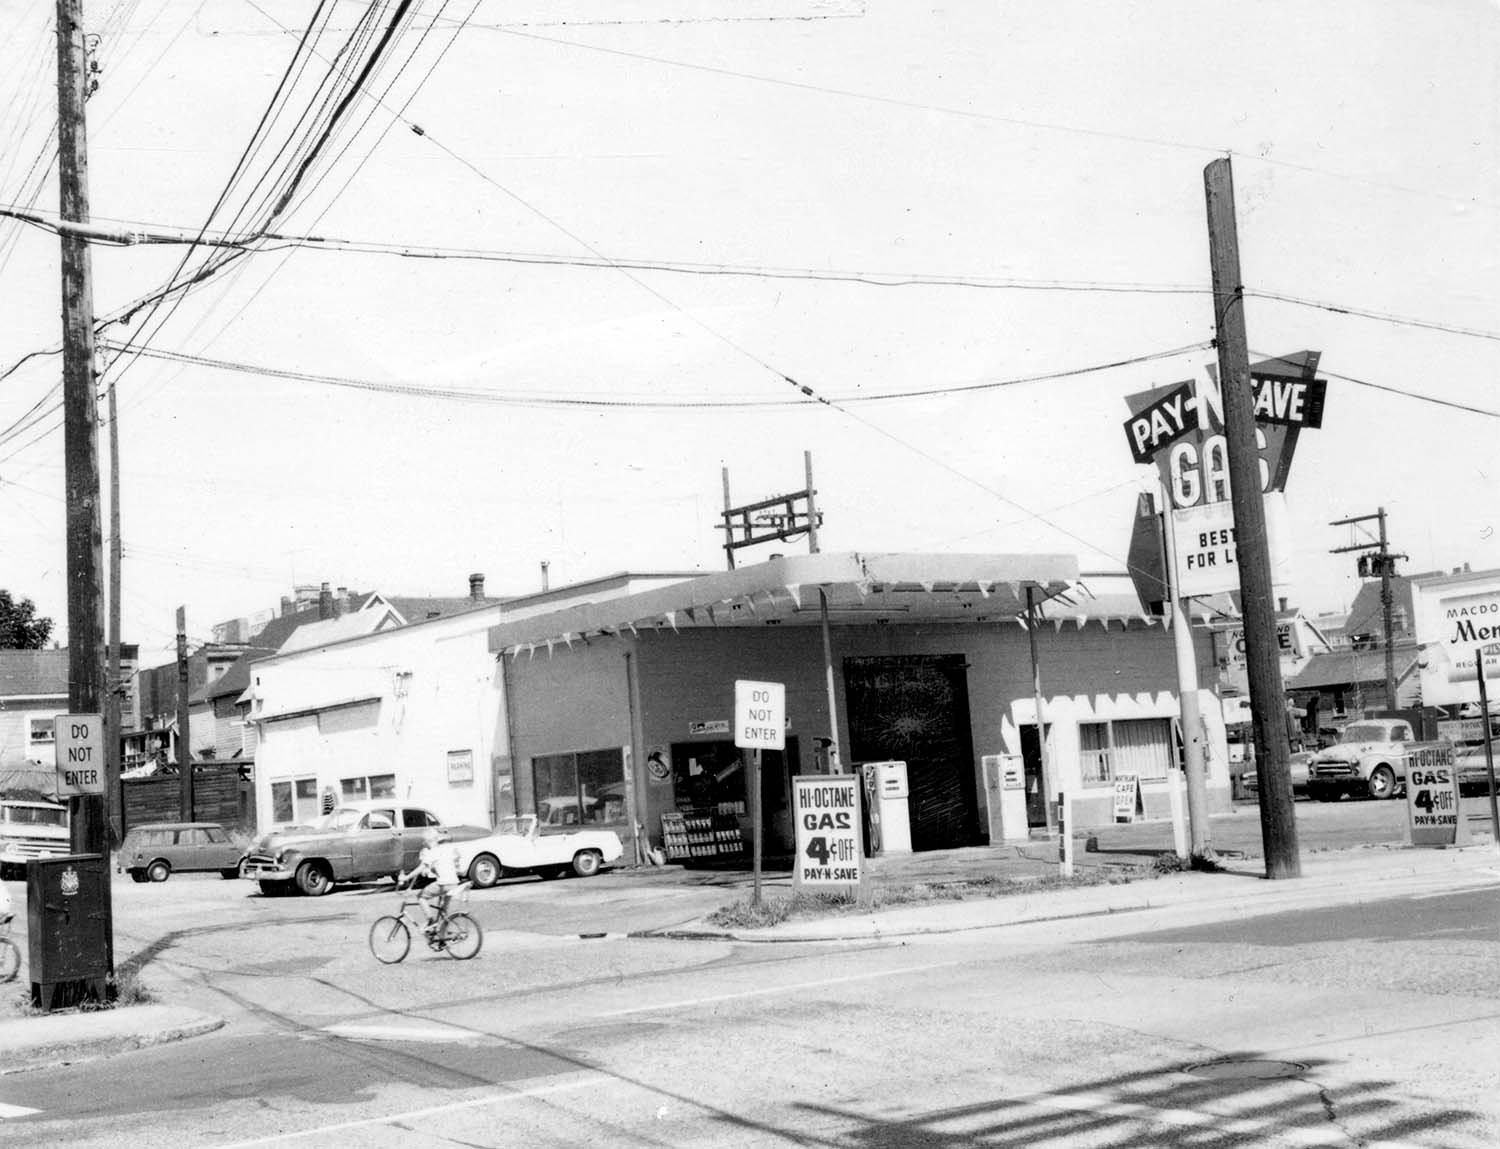 219 and 221 Prior Street, 1969. Photograph shows the Iberica Garage and the Northland Cafe. Reference code COV-S168-: CVA 203-60